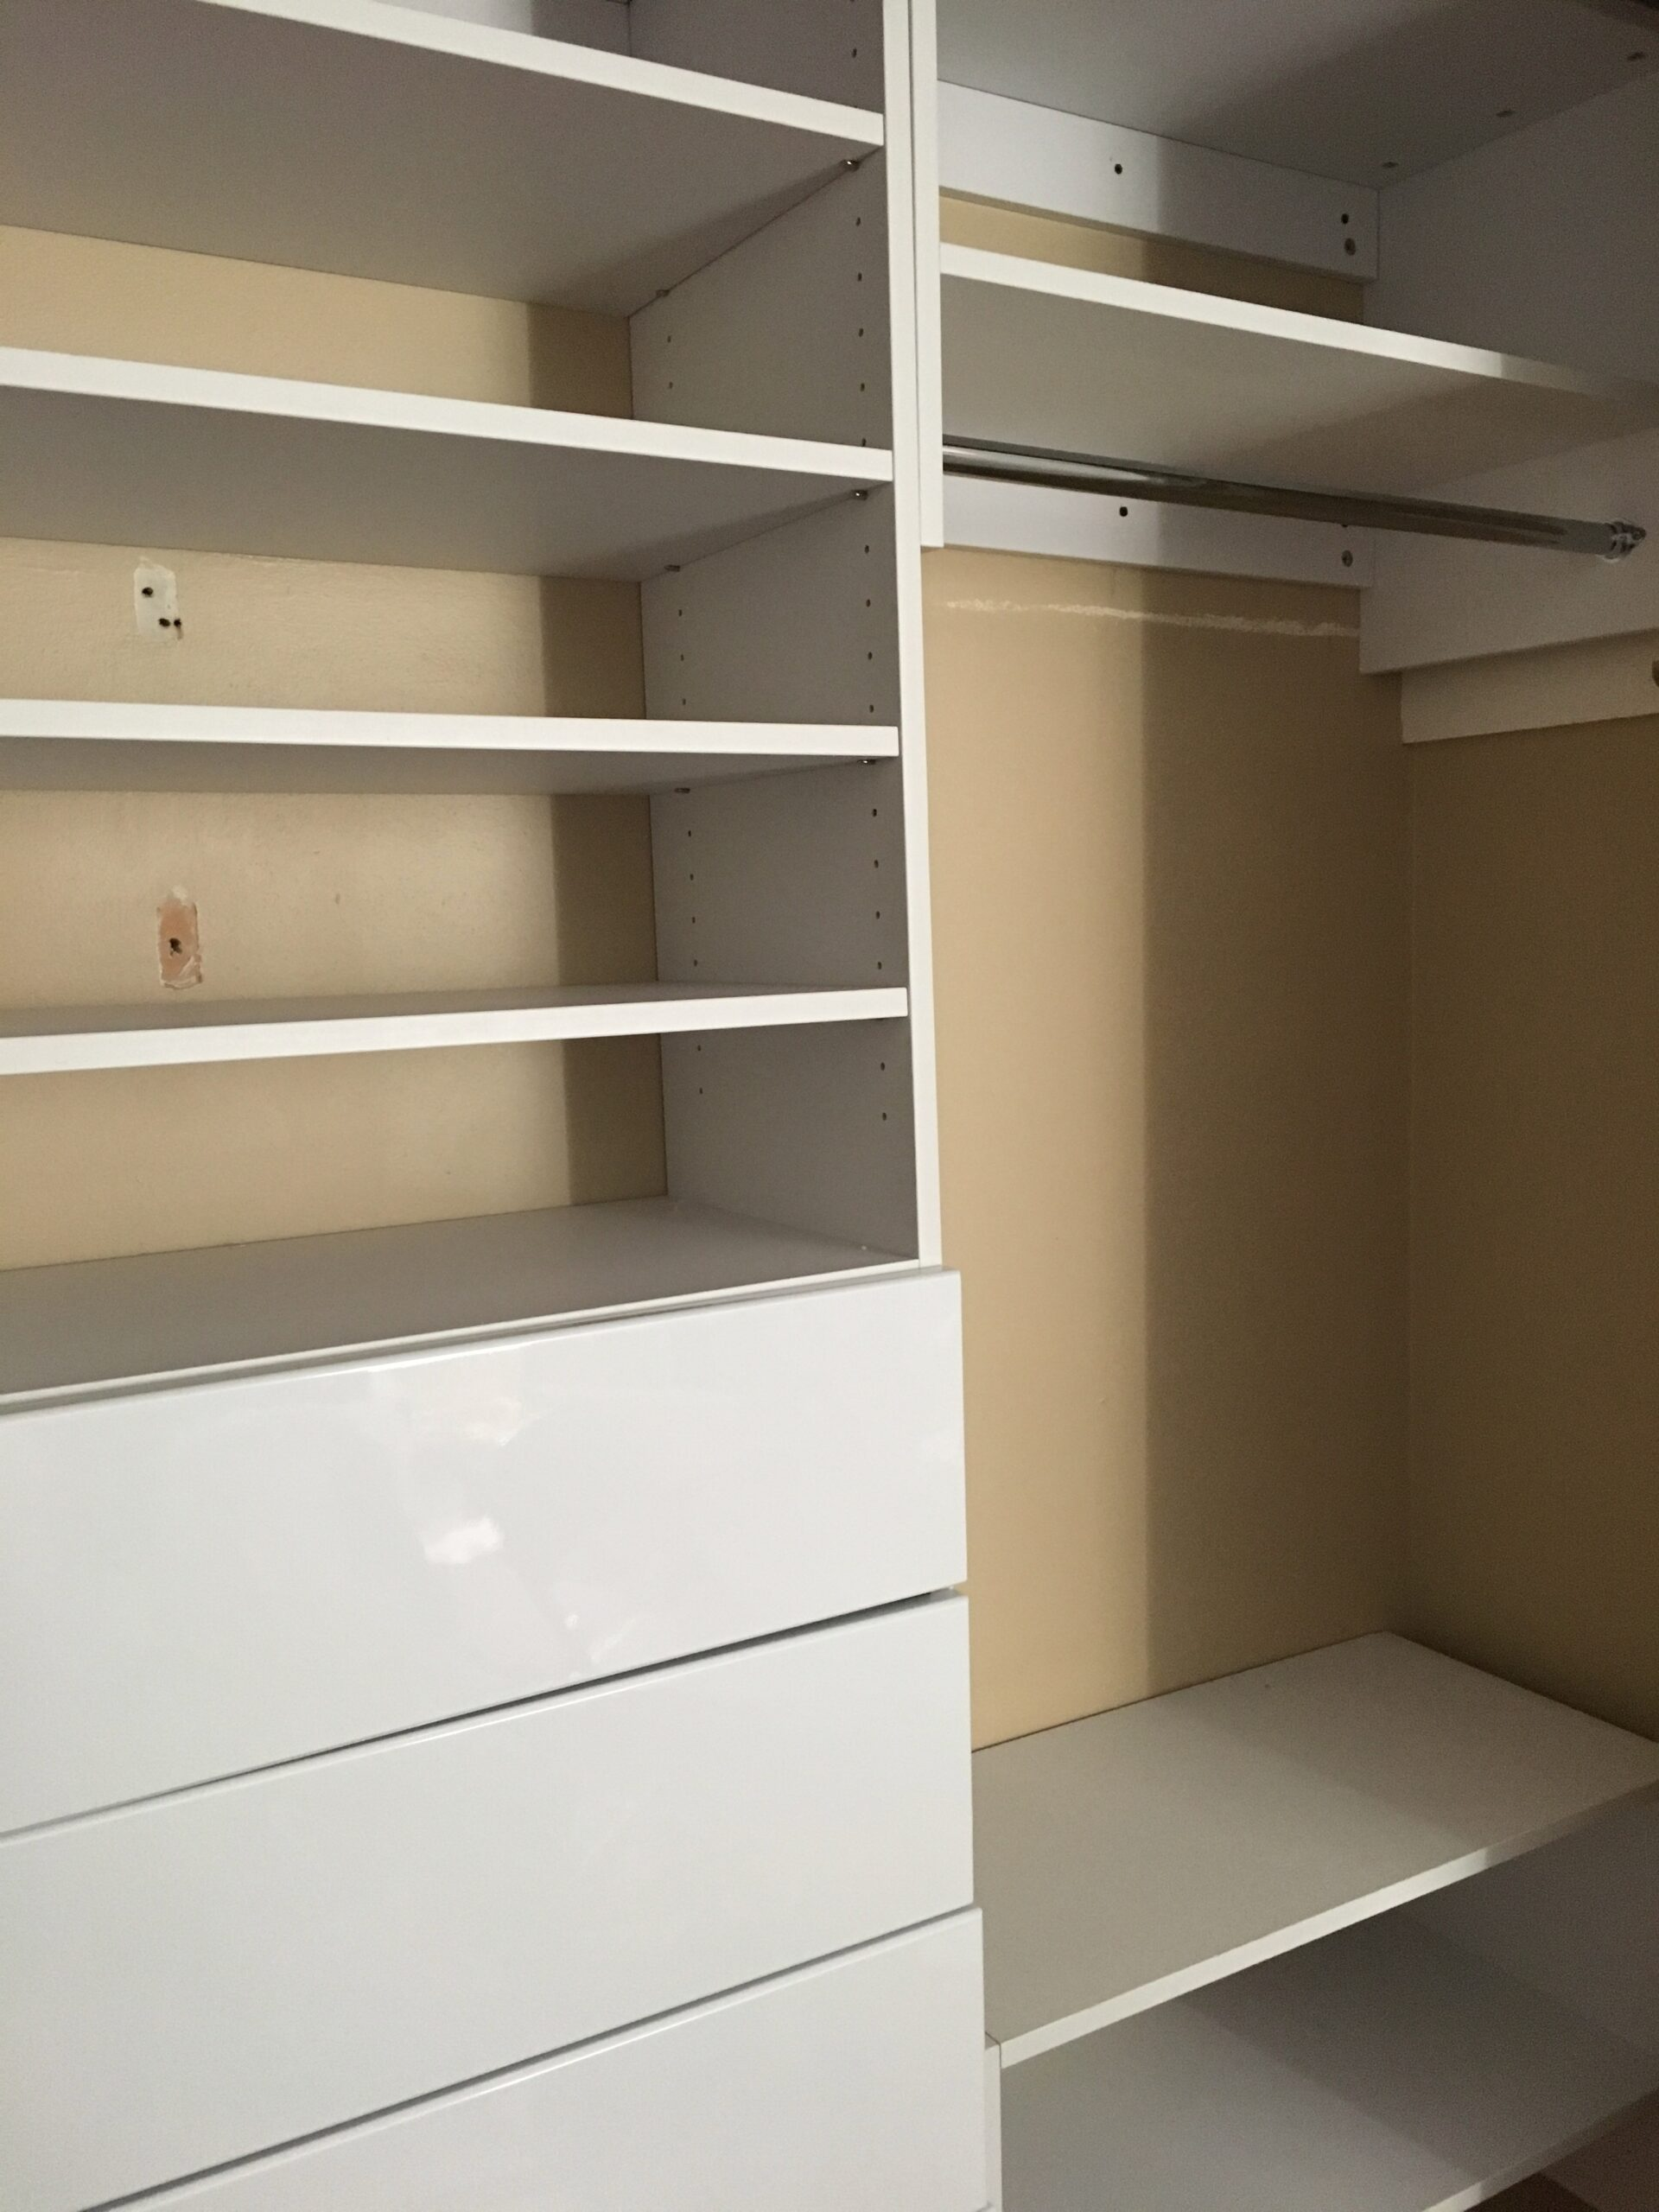 ... Clothes, Etc. I Have Been Able To Fill The Closet And Have Not Had Any  Problems. It Is So Great Having An Organized Space And Modern, Useful  Update To ...